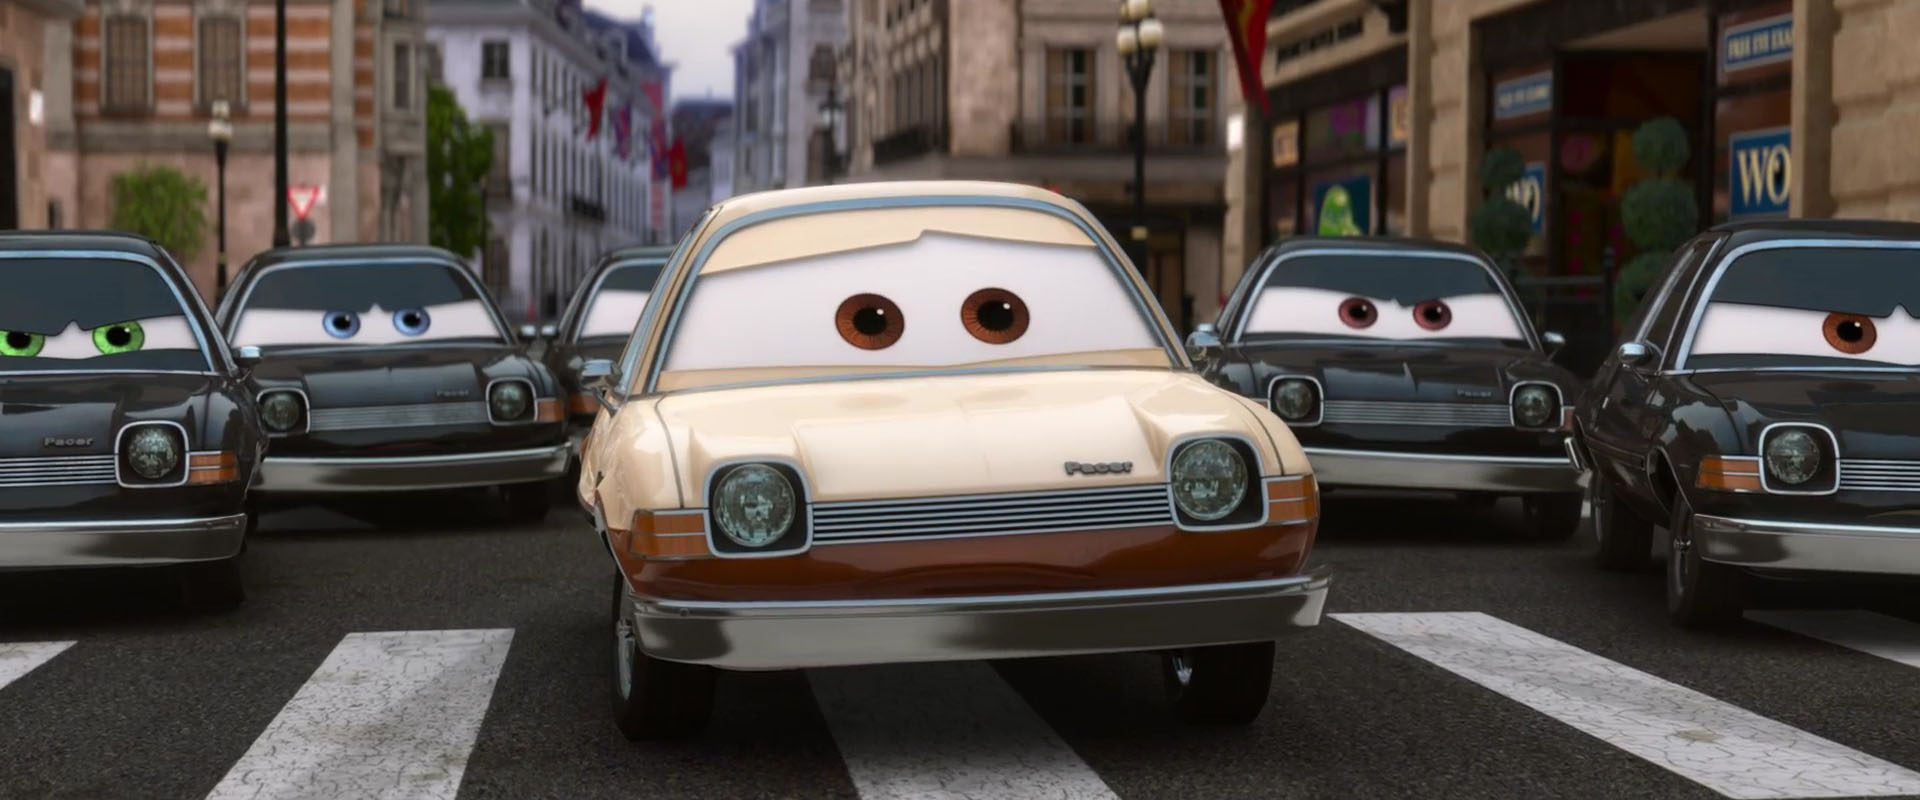 tubbs-pacer-personnage-cars-2-04